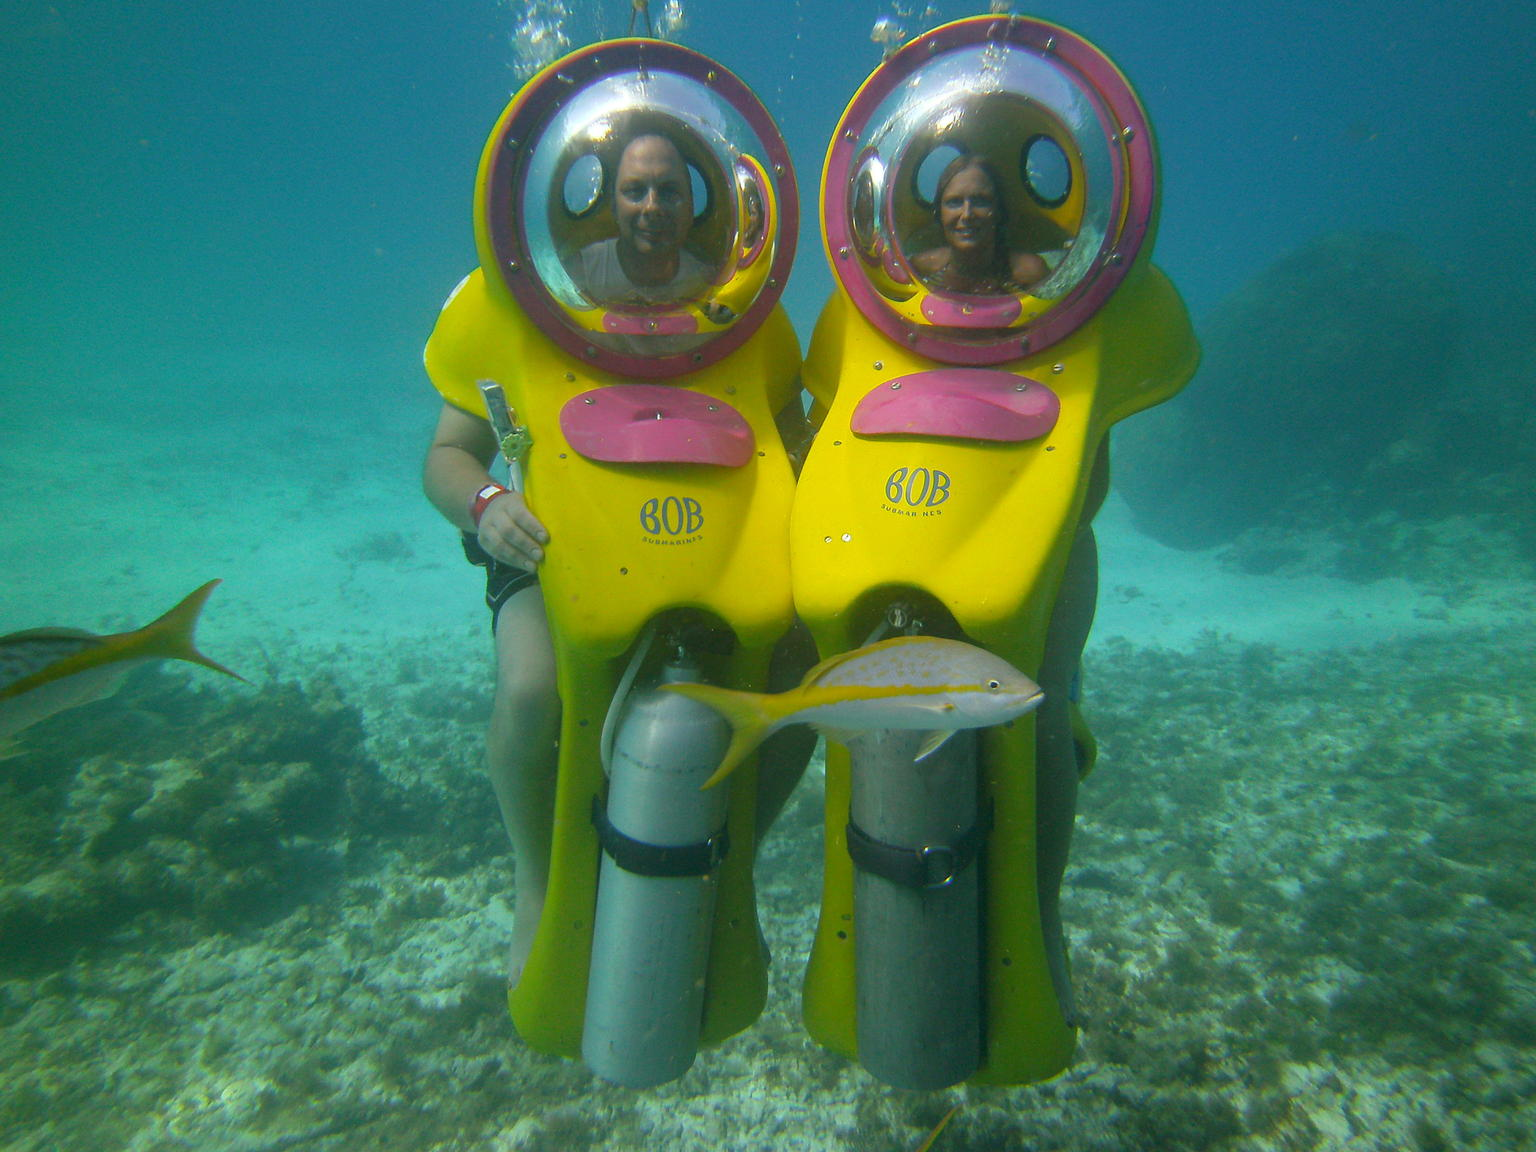 Cancun Underwater BOB Scooter and Snorkel Adventure